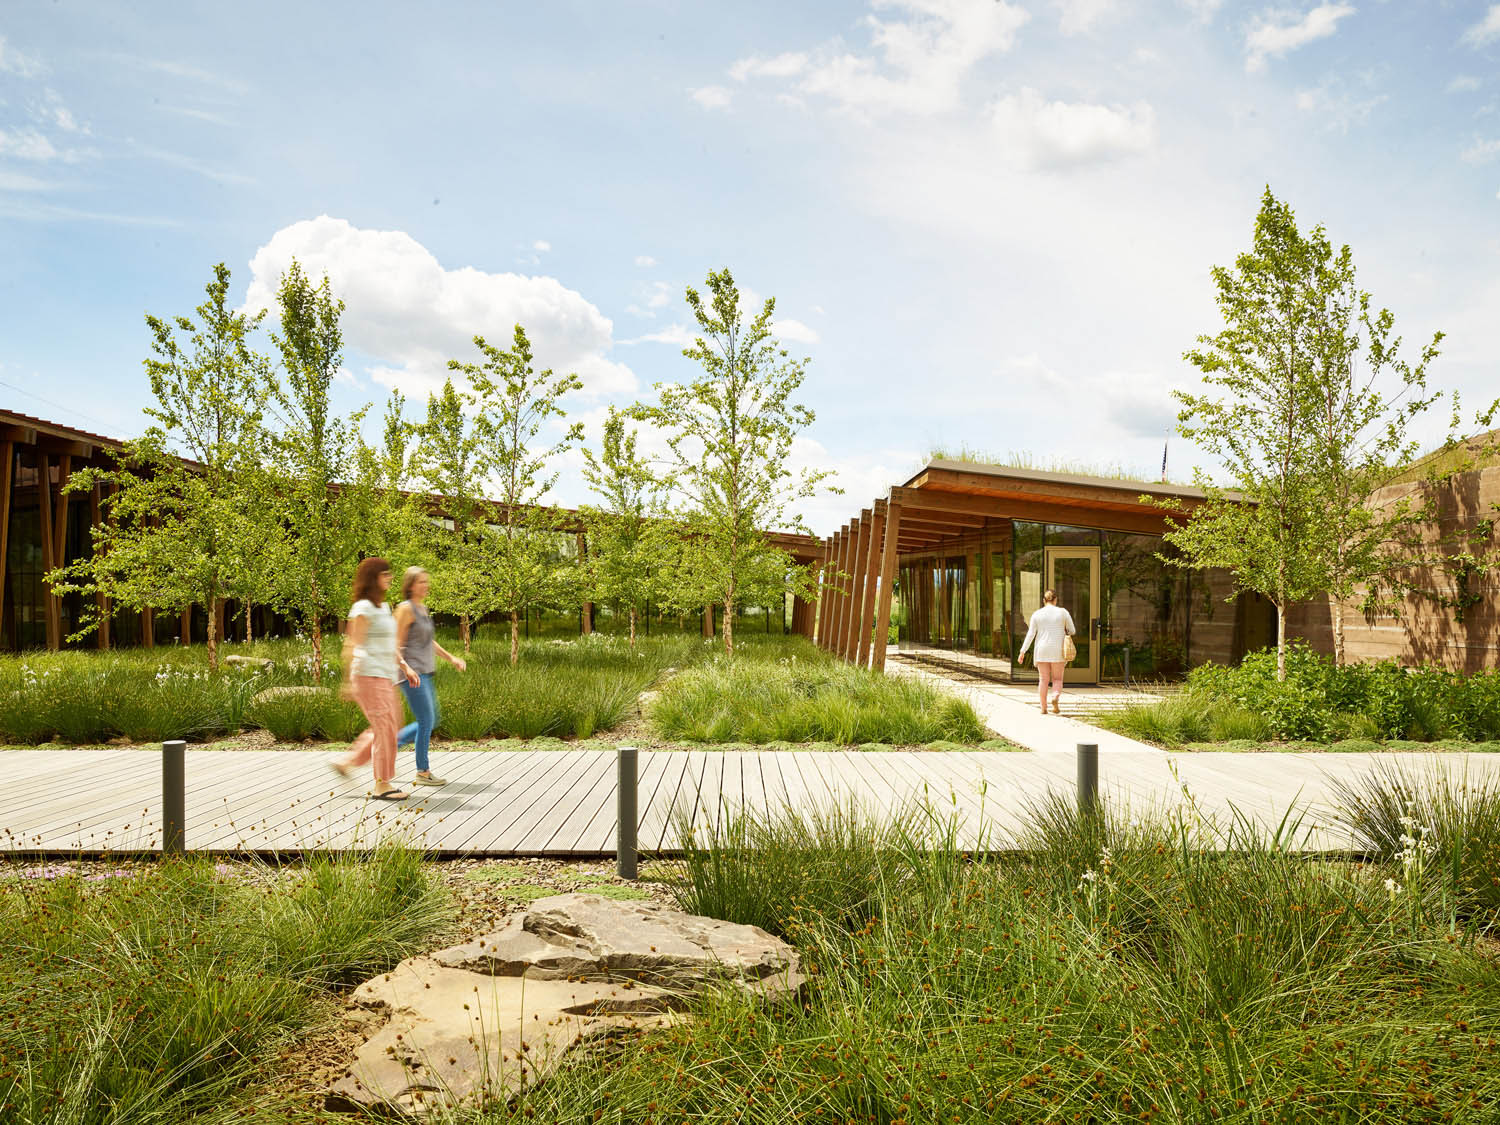 The building and the landscape play off of each other, creating an oasis both inside the work space and out. Kevin Scott